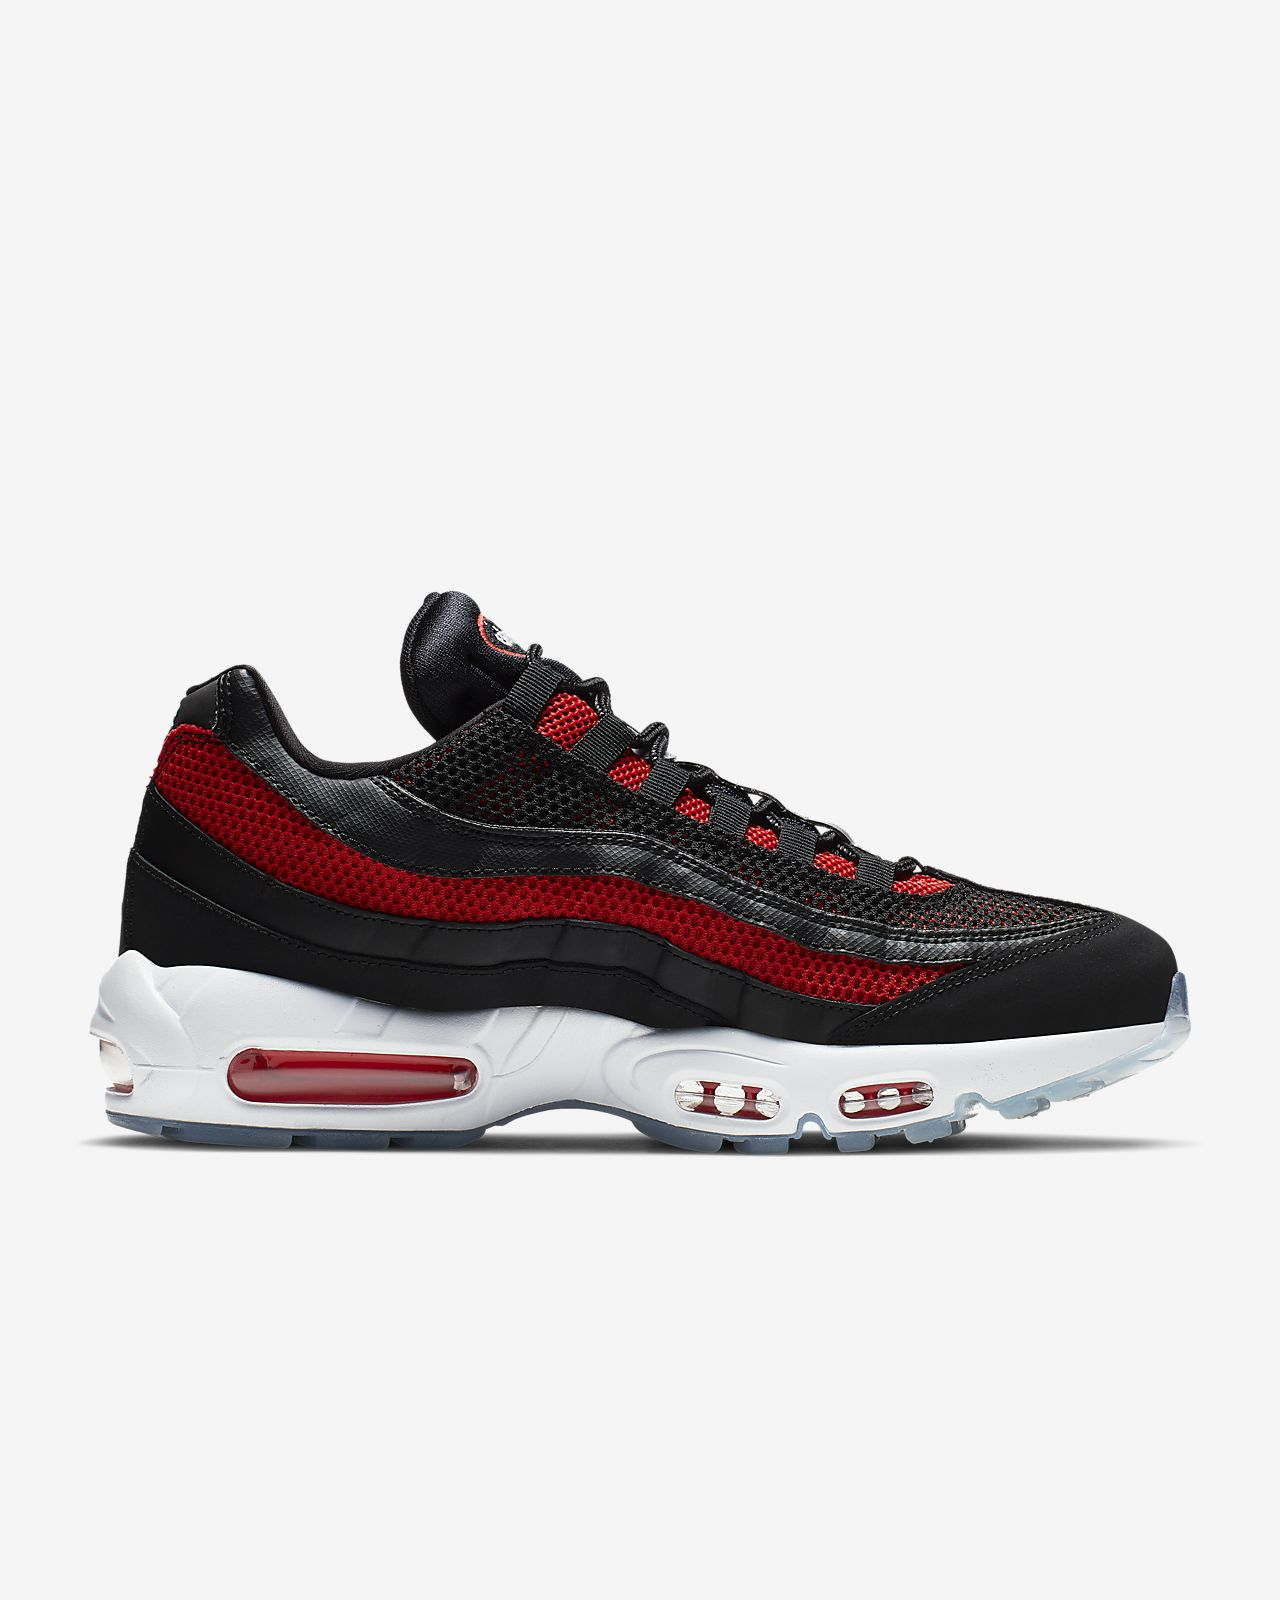 online retailer 0d759 16a79 ... Nike Air Max 95 Essential Men s Shoe